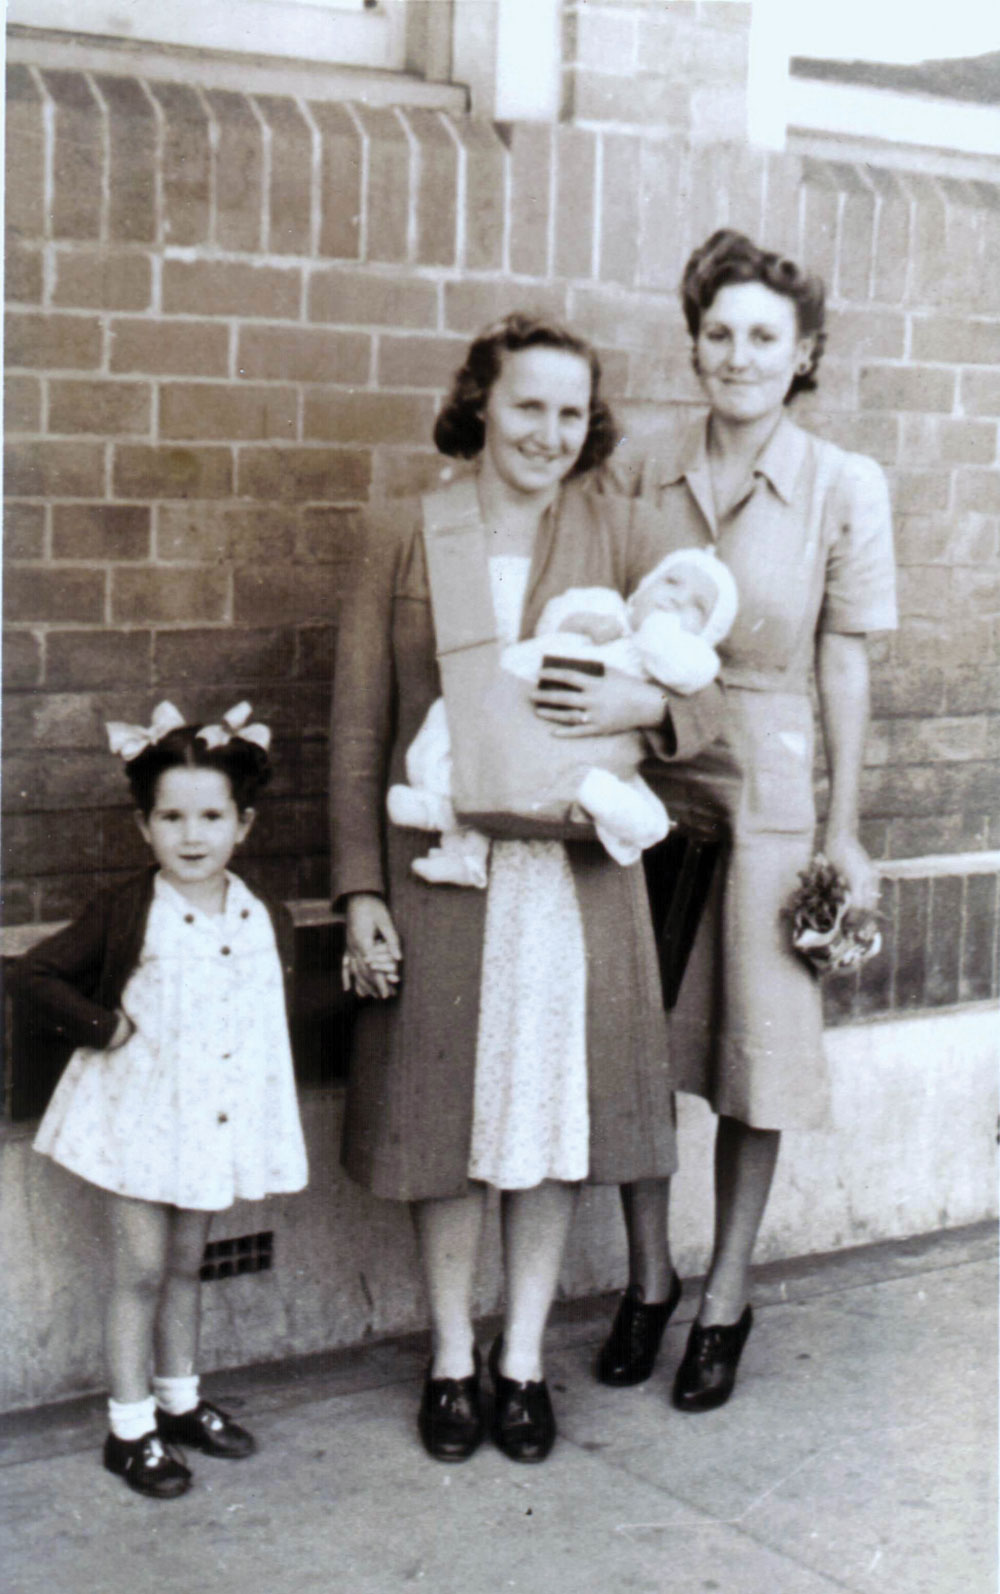 Rhonda Emery, Nita Emery (Brad's grandmother), and Evelyn Higgins (née Hatton).